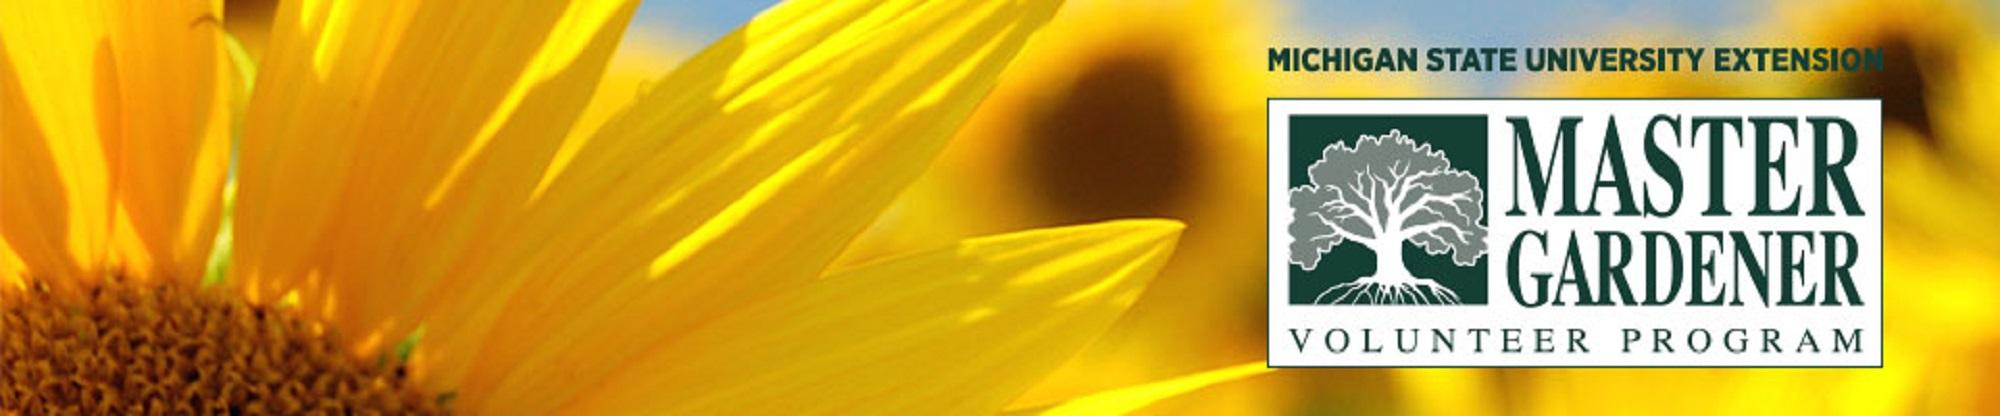 Image of a sunflower with the master gardener logo on it.